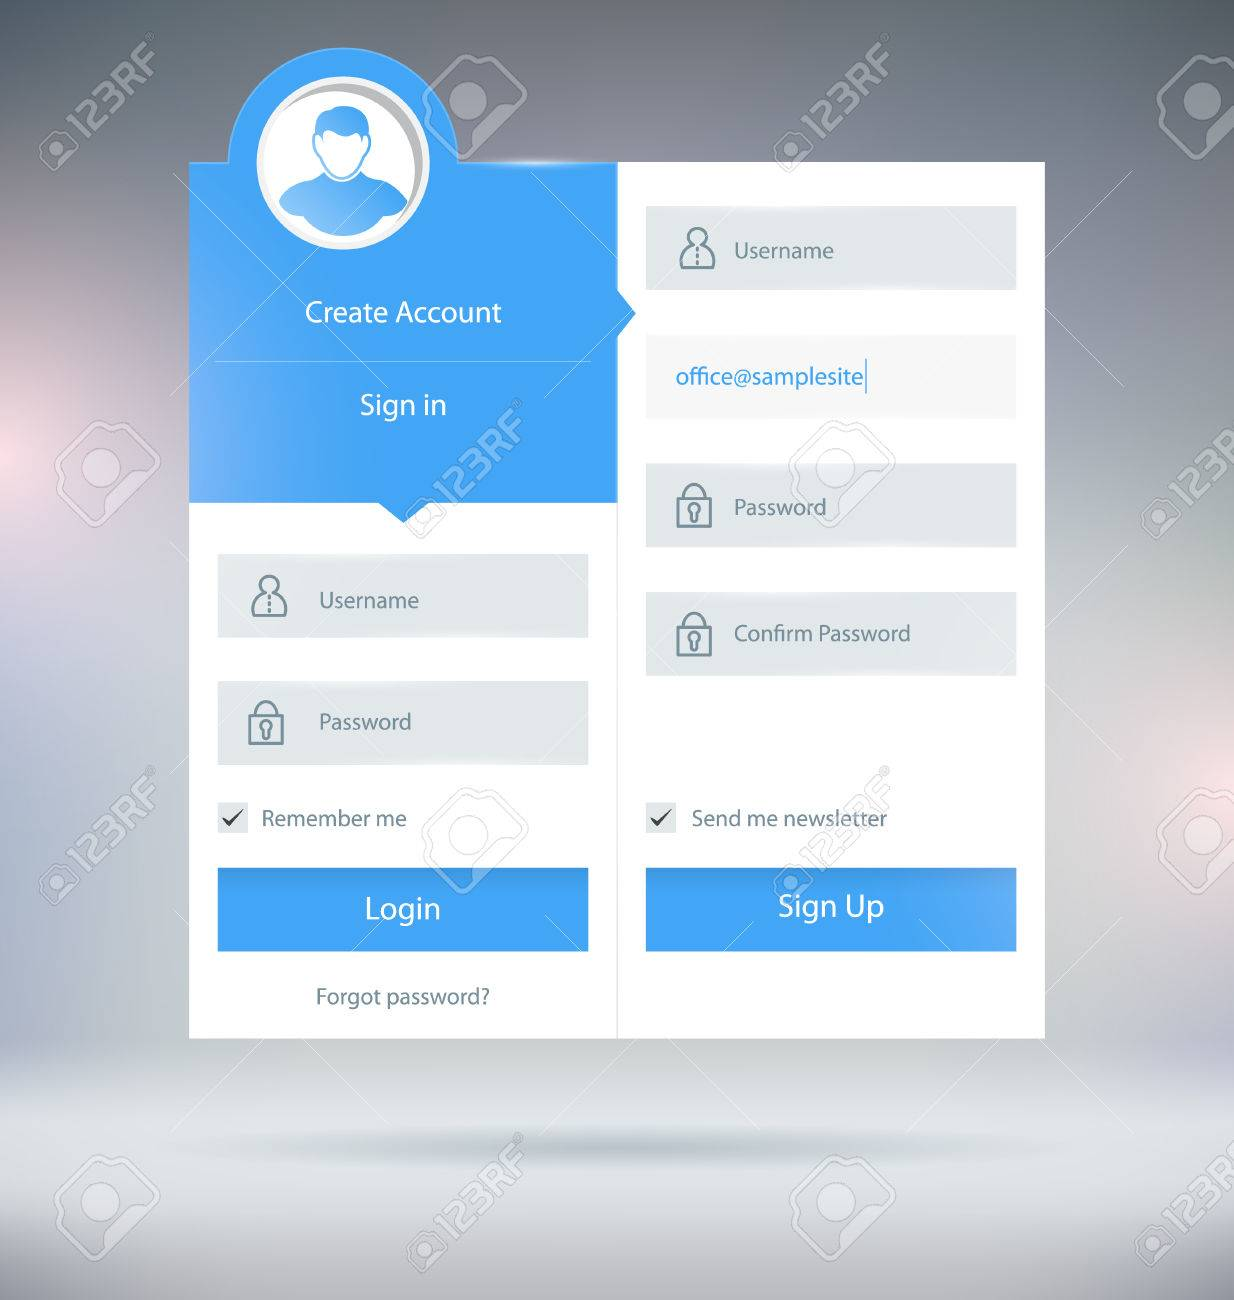 Login form ui design vector template royalty free cliparts login form ui design vector template stock vector 47223053 pronofoot35fo Choice Image